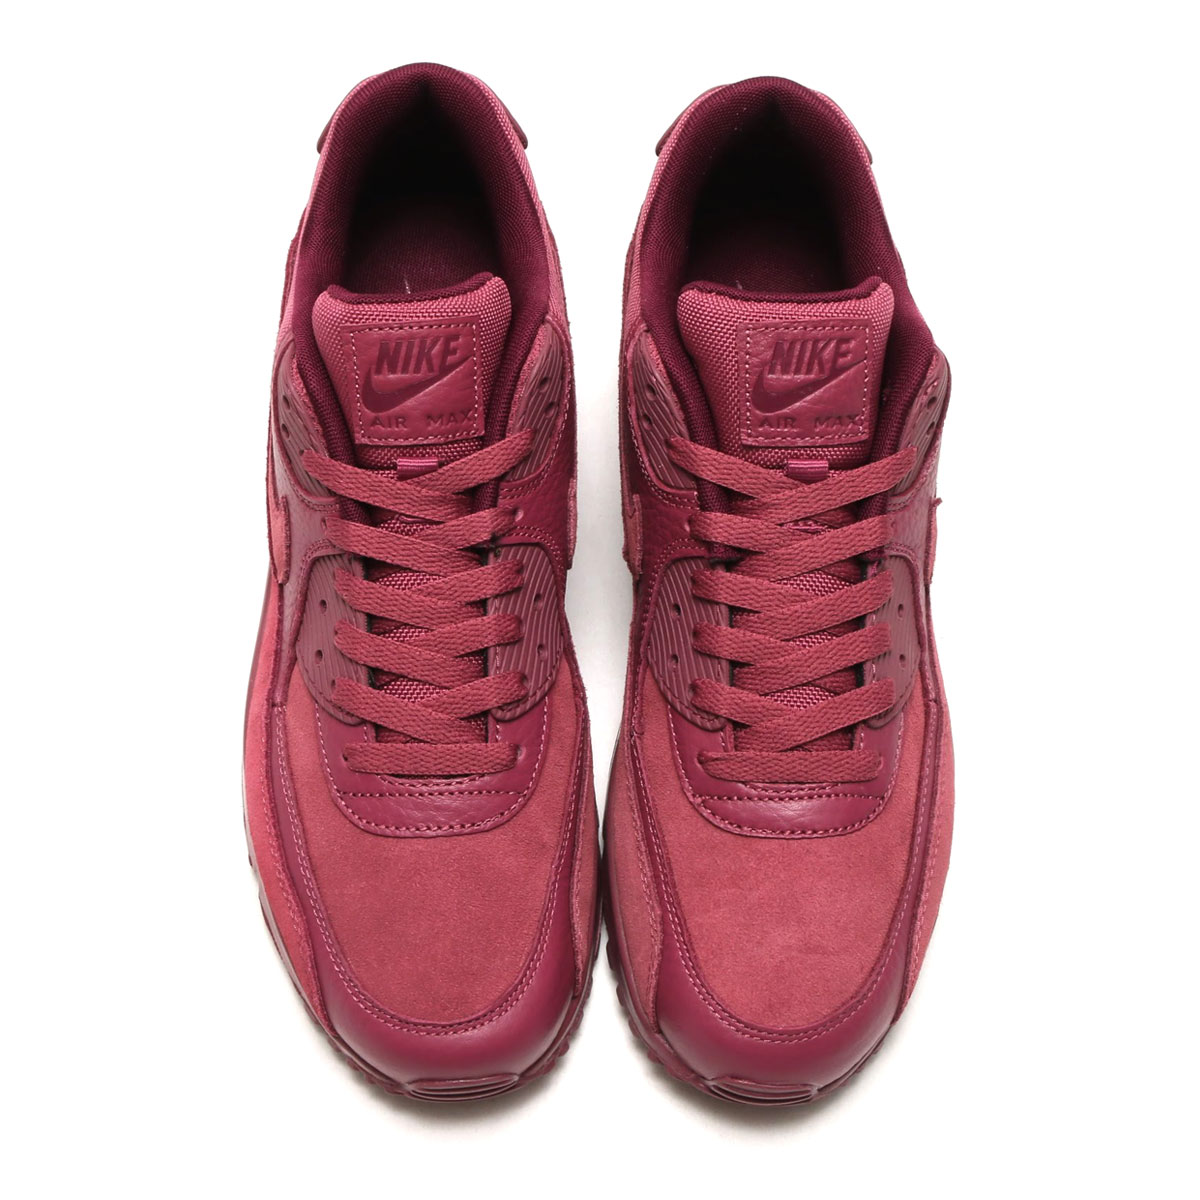 huge discount fde71 0bbcf maximum point 10 times that is targeted for all articles! NIKE AIR MAX 90  PREMIUM (Kie Ney AMAX 90 premium) (VINTAGE WINE VINTAGE WINE-BORDEAUX)  18SP-S